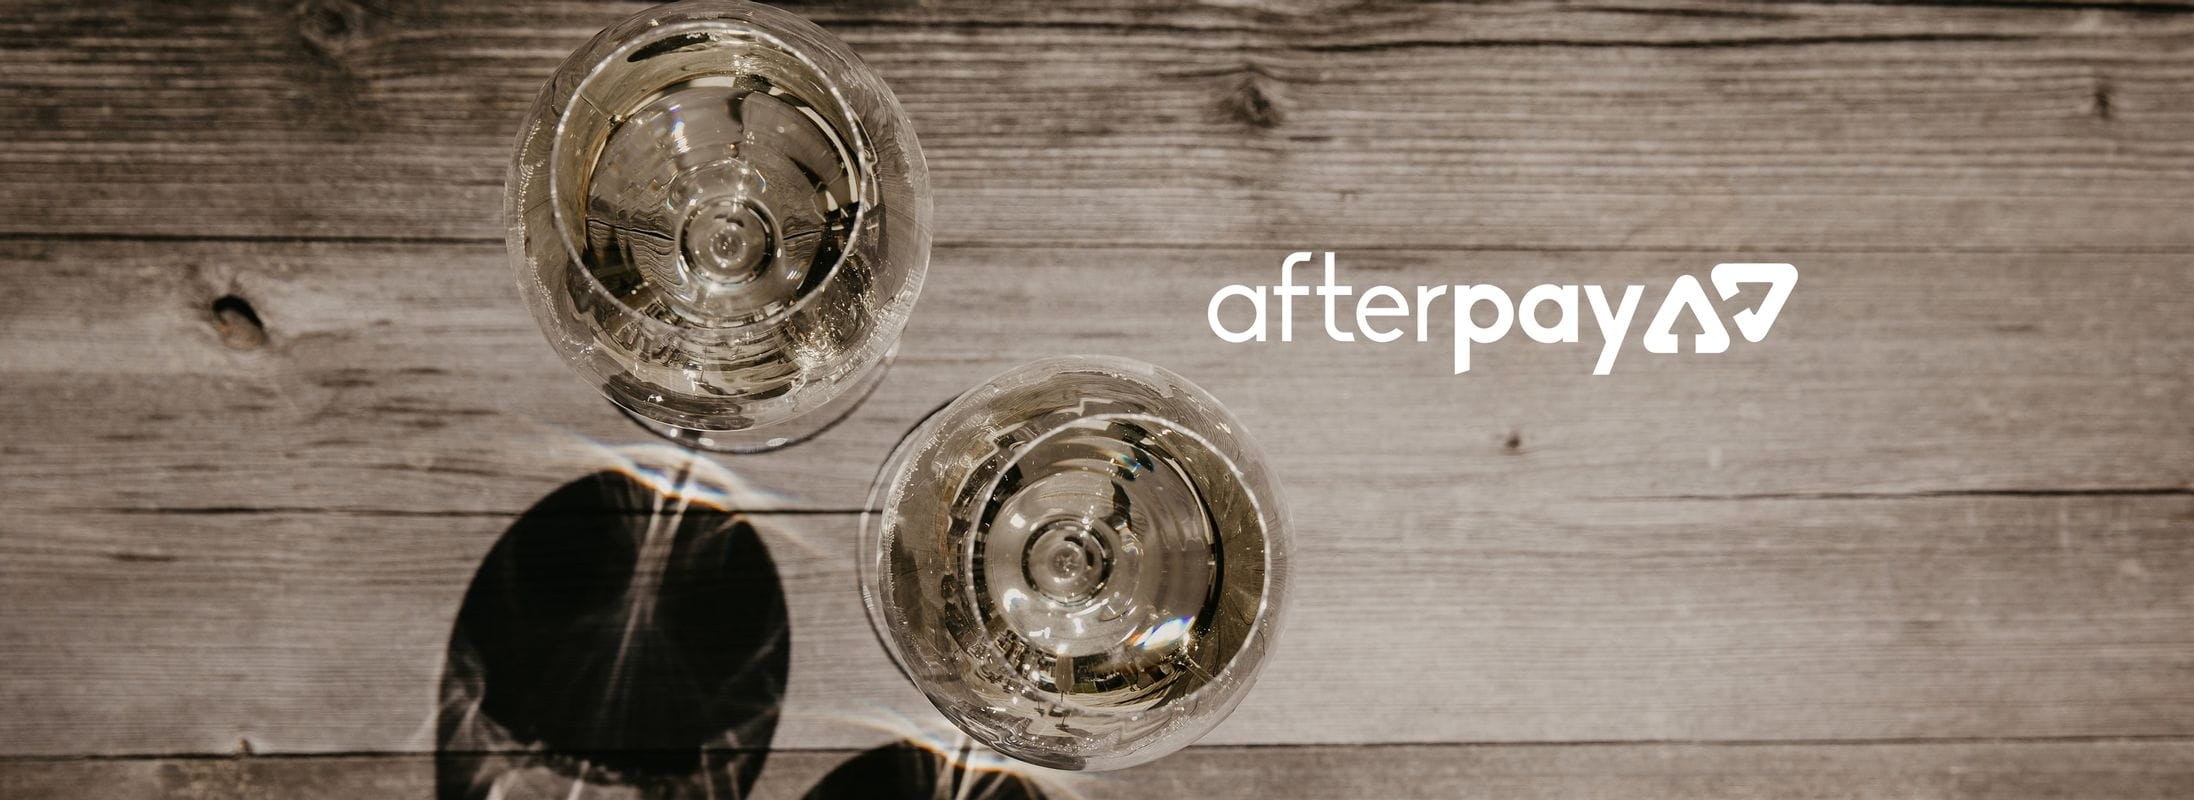 Pay your order with afterpay